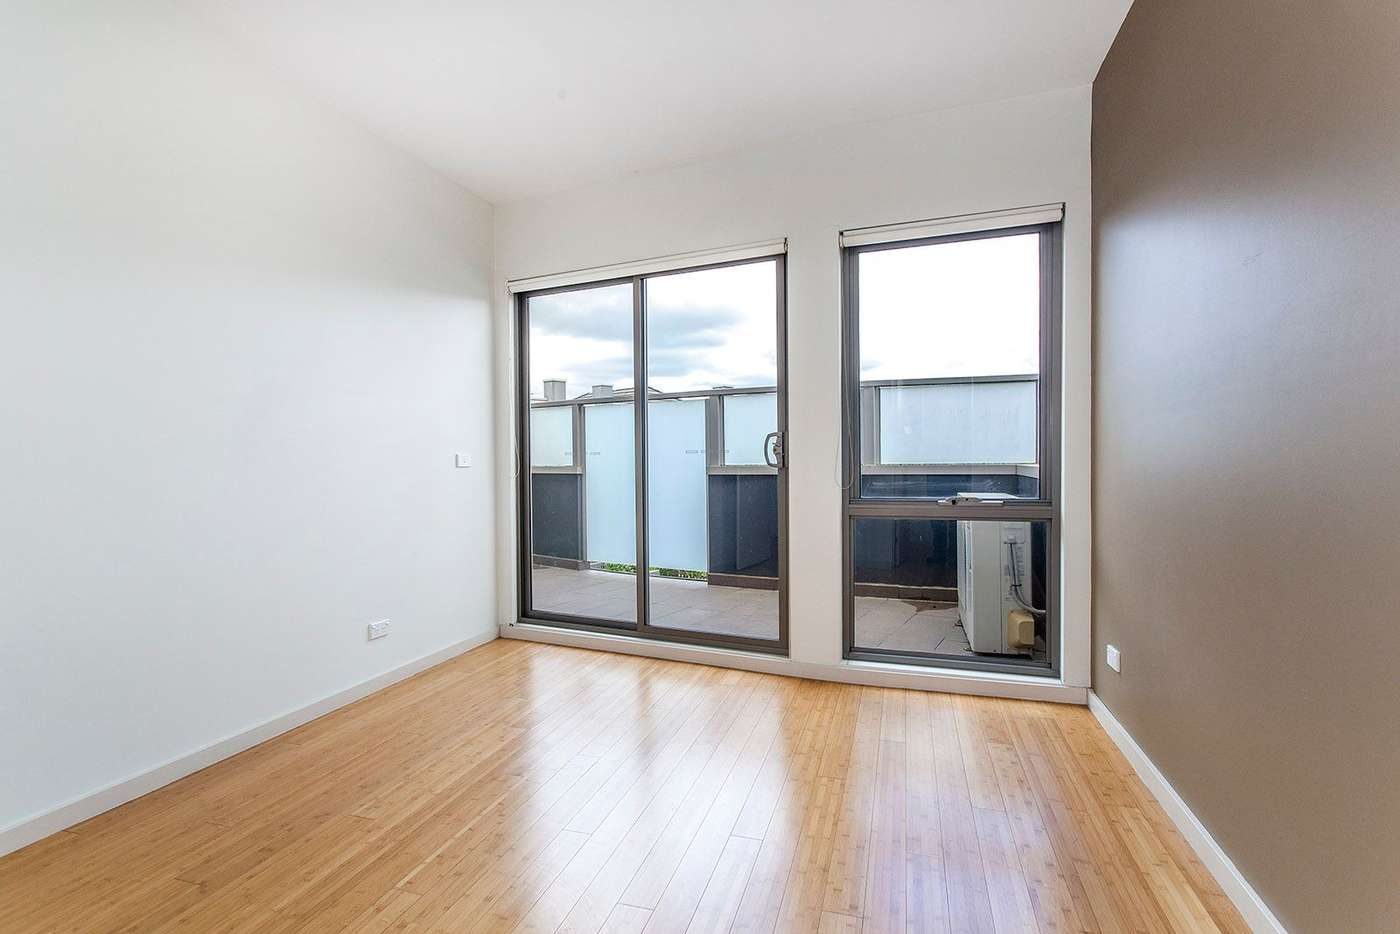 Sixth view of Homely apartment listing, 13/1 Kenilworth Parade, Ivanhoe VIC 3079